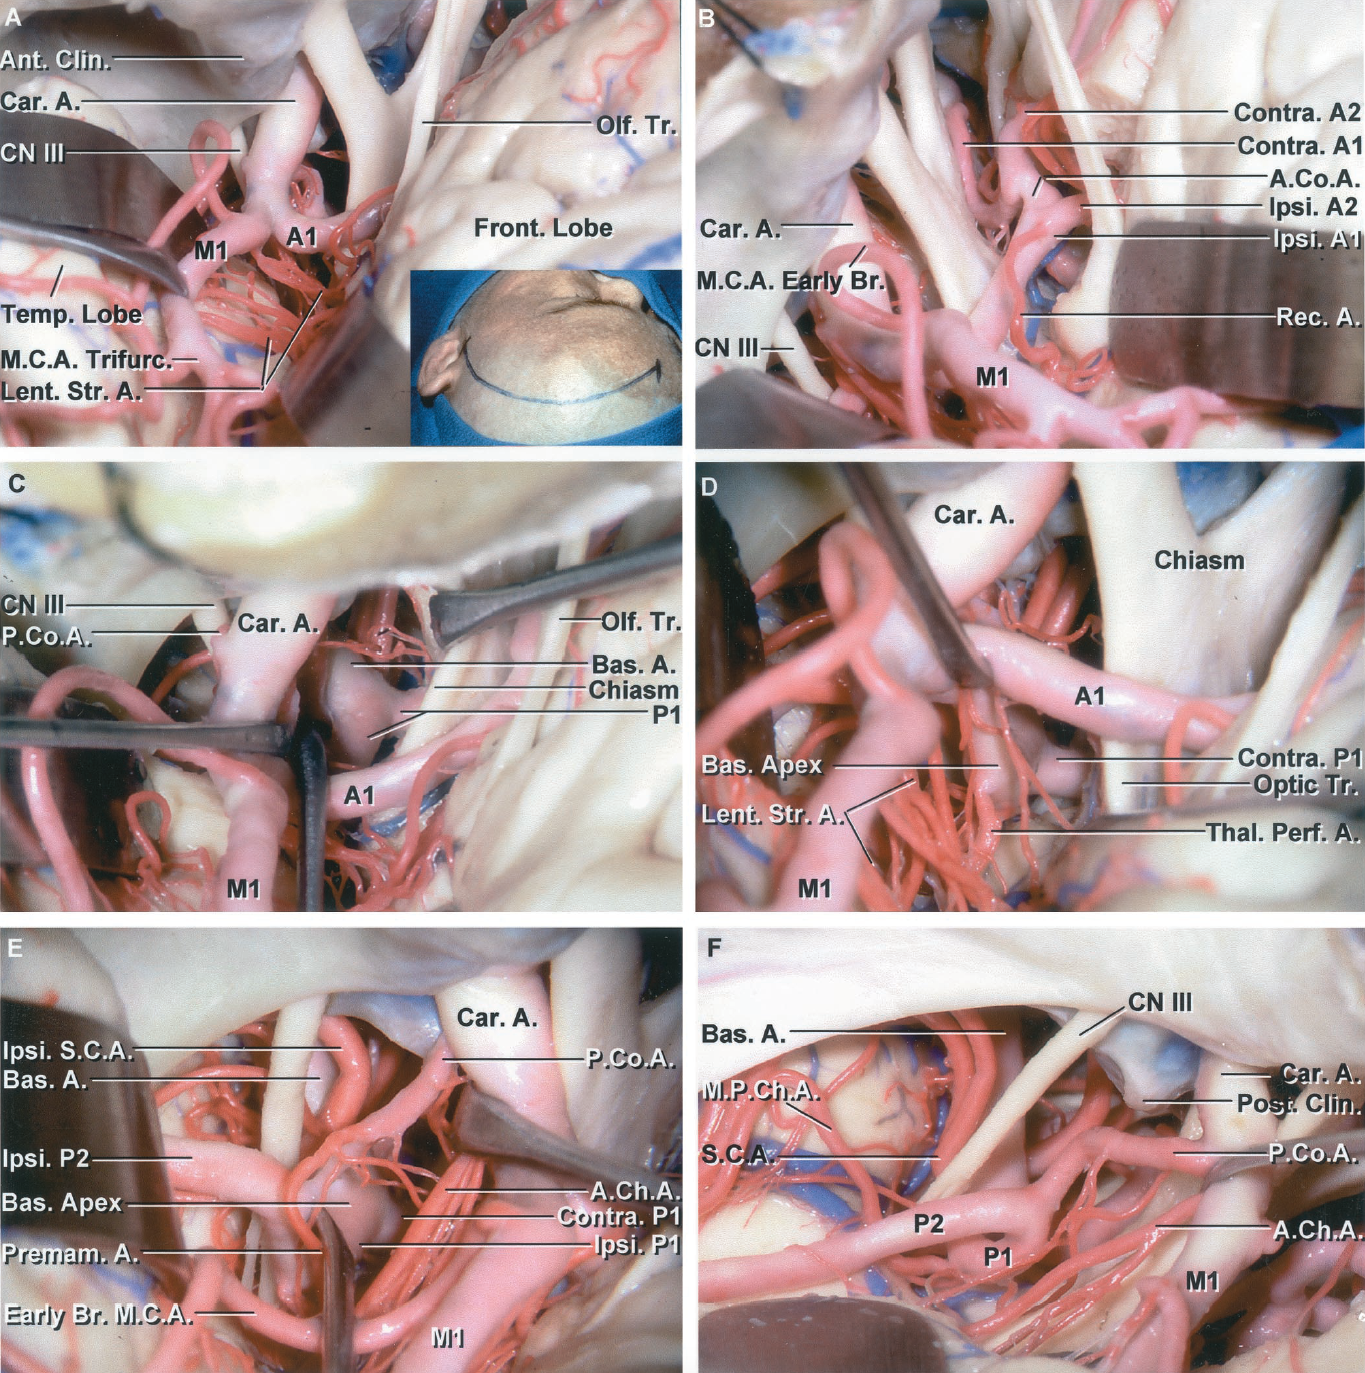 Figure 2.3 A-F. Pterional exposure of the circle of Willis. A, a left frontotemporal bone flap has been elevated and the dura opened. The left frontal and temporal lobes have been retracted to expose the carotid artery entering the dura medial to the anterior clinoid process. The carotid bifurcation has been exposed. Lenticulostriate arteries arise from the M1. The M1 splits in a trifurcation pattern. B, the exposure has been extended between the chiasm and frontal lobe to the AComA and the contralateral A1 and A2s. A recurrent artery arising near the AComA passes laterally above the carotid bifurcation. C, the basilar bifurcation has been exposed through the opticocarotid triangle located between the internal carotid artery, A1, and optic nerve. D, the carotid bifurcation has been depressed to expose the basilar apex in the interval between the carotid bifurcation and the lower margin of the optic tract. Perforating branches crossing the area can make the approach hazardous. A thalamoperforating artery arises from the ipsilateral P1. E, the temporal pole has been retracted posteriorly for a pretemporal exposure. The carotid and anterior choroidal arteries have been elevated to expose the PComA, which gives rise to a large perforating branch referred to as a premamillary artery. The M1 gives rise to an early branch proximal to the trifurcation. The P2 extends above and the superior cerebellar artery (SCA) extends below the oculomotor nerve. F, anterior subtemporal view. The temporal pole and the carotid artery have been elevated to the expose the origin of the normal-sized PComA. The AChA passes backward along the medial edge of the uncus. A large MPChA arises from the P1 and loops downward as it passes to the quadrigeminal cistern.